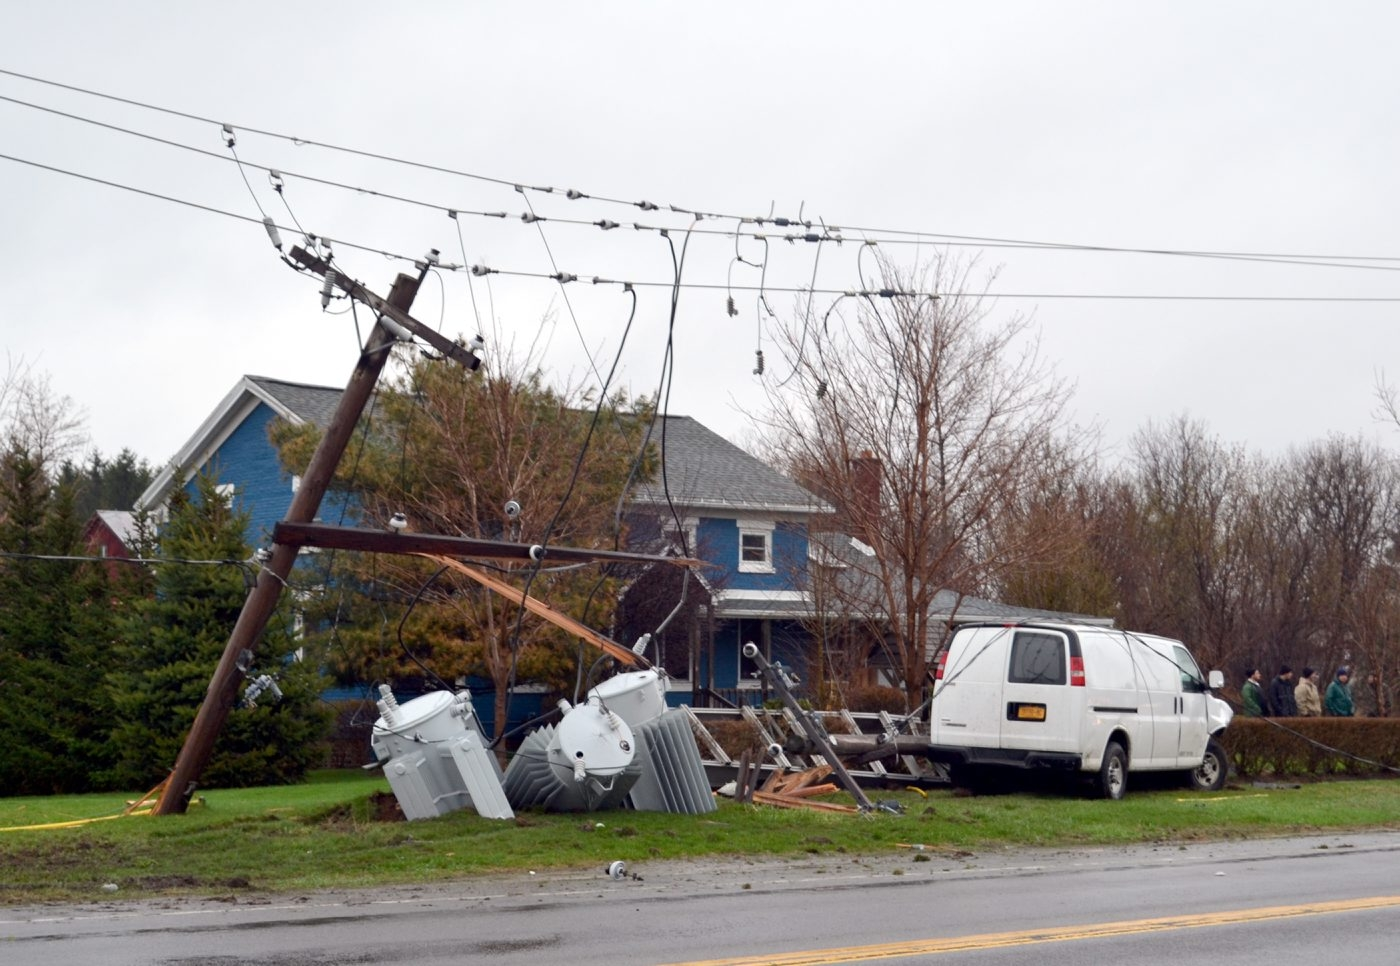 This van driven Robert Domagala drove off the road and struck two power poles at 3511 Ridge Road/Route 104, just past Church Road, earlier this morning.